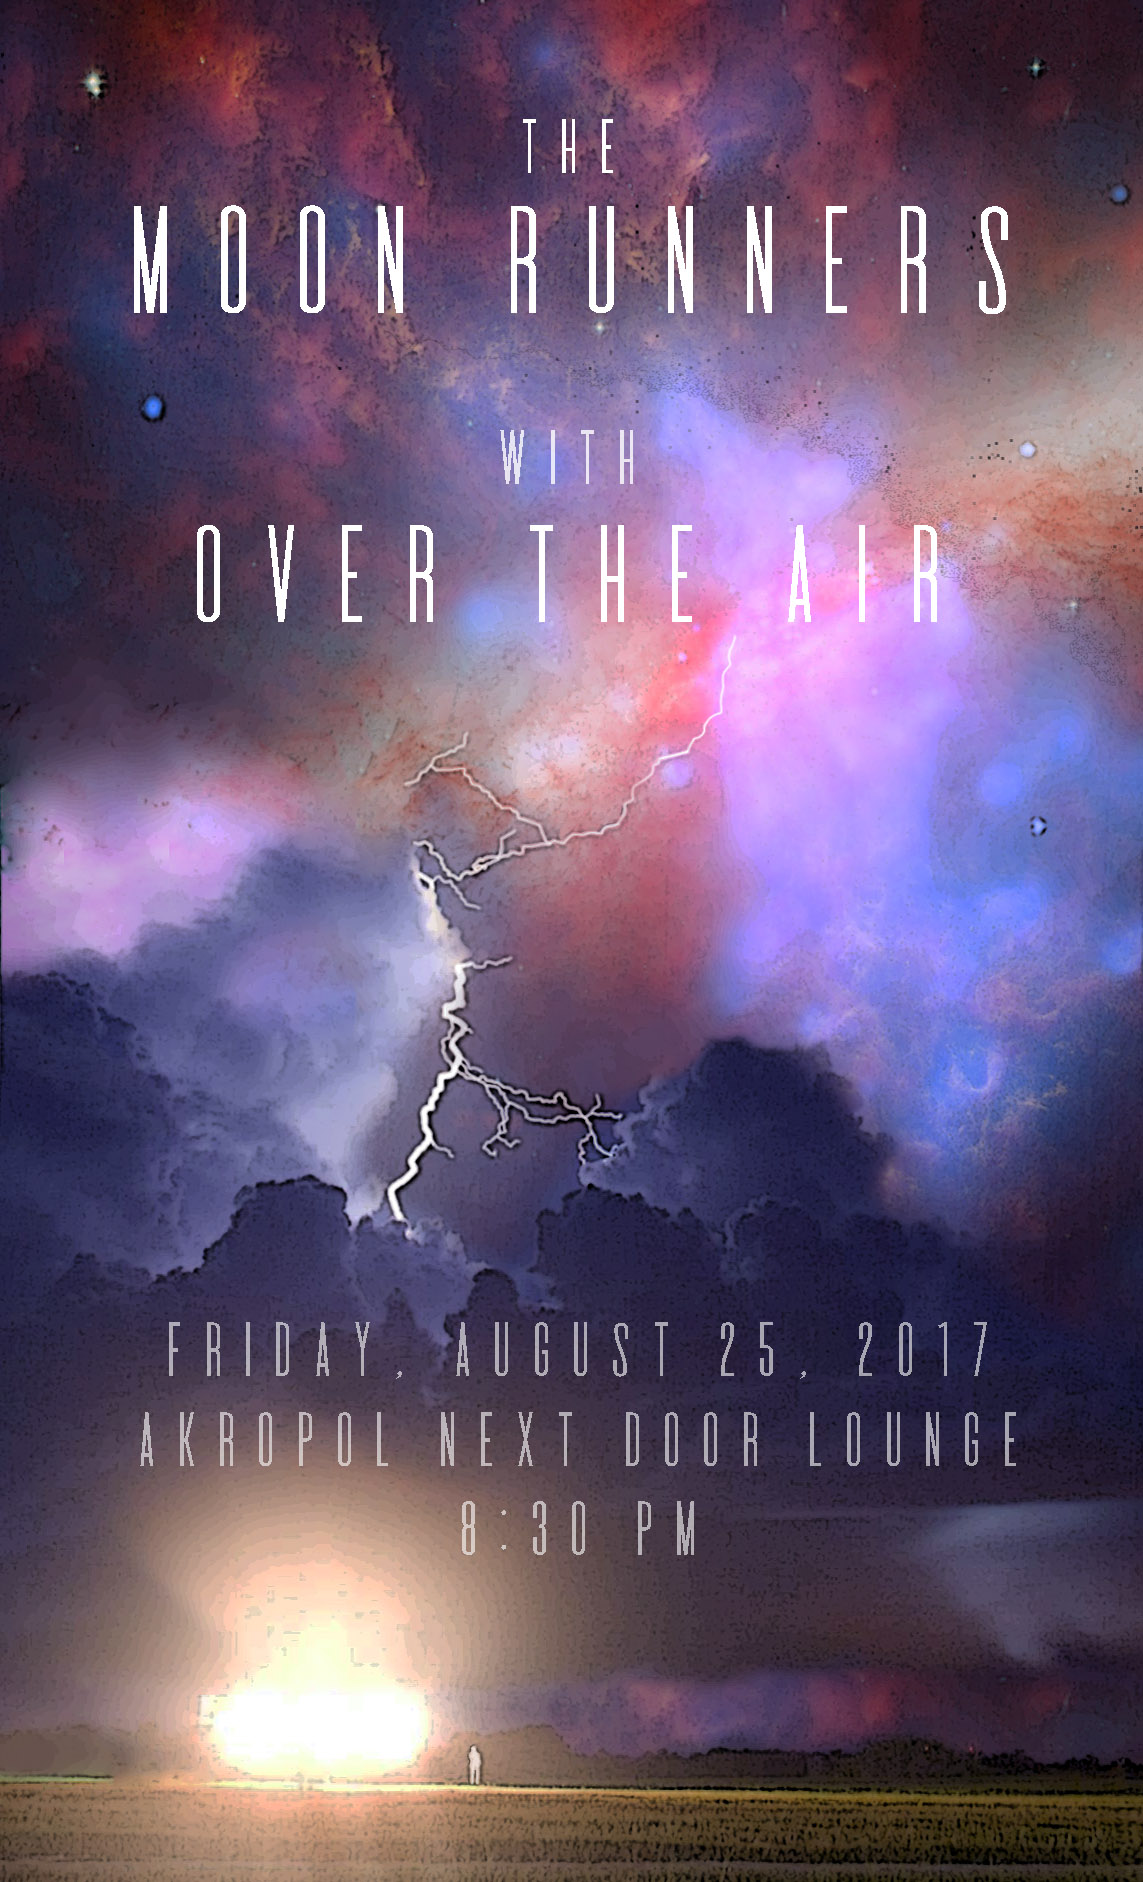 Moon Runners & OTA Poster, Aug 25